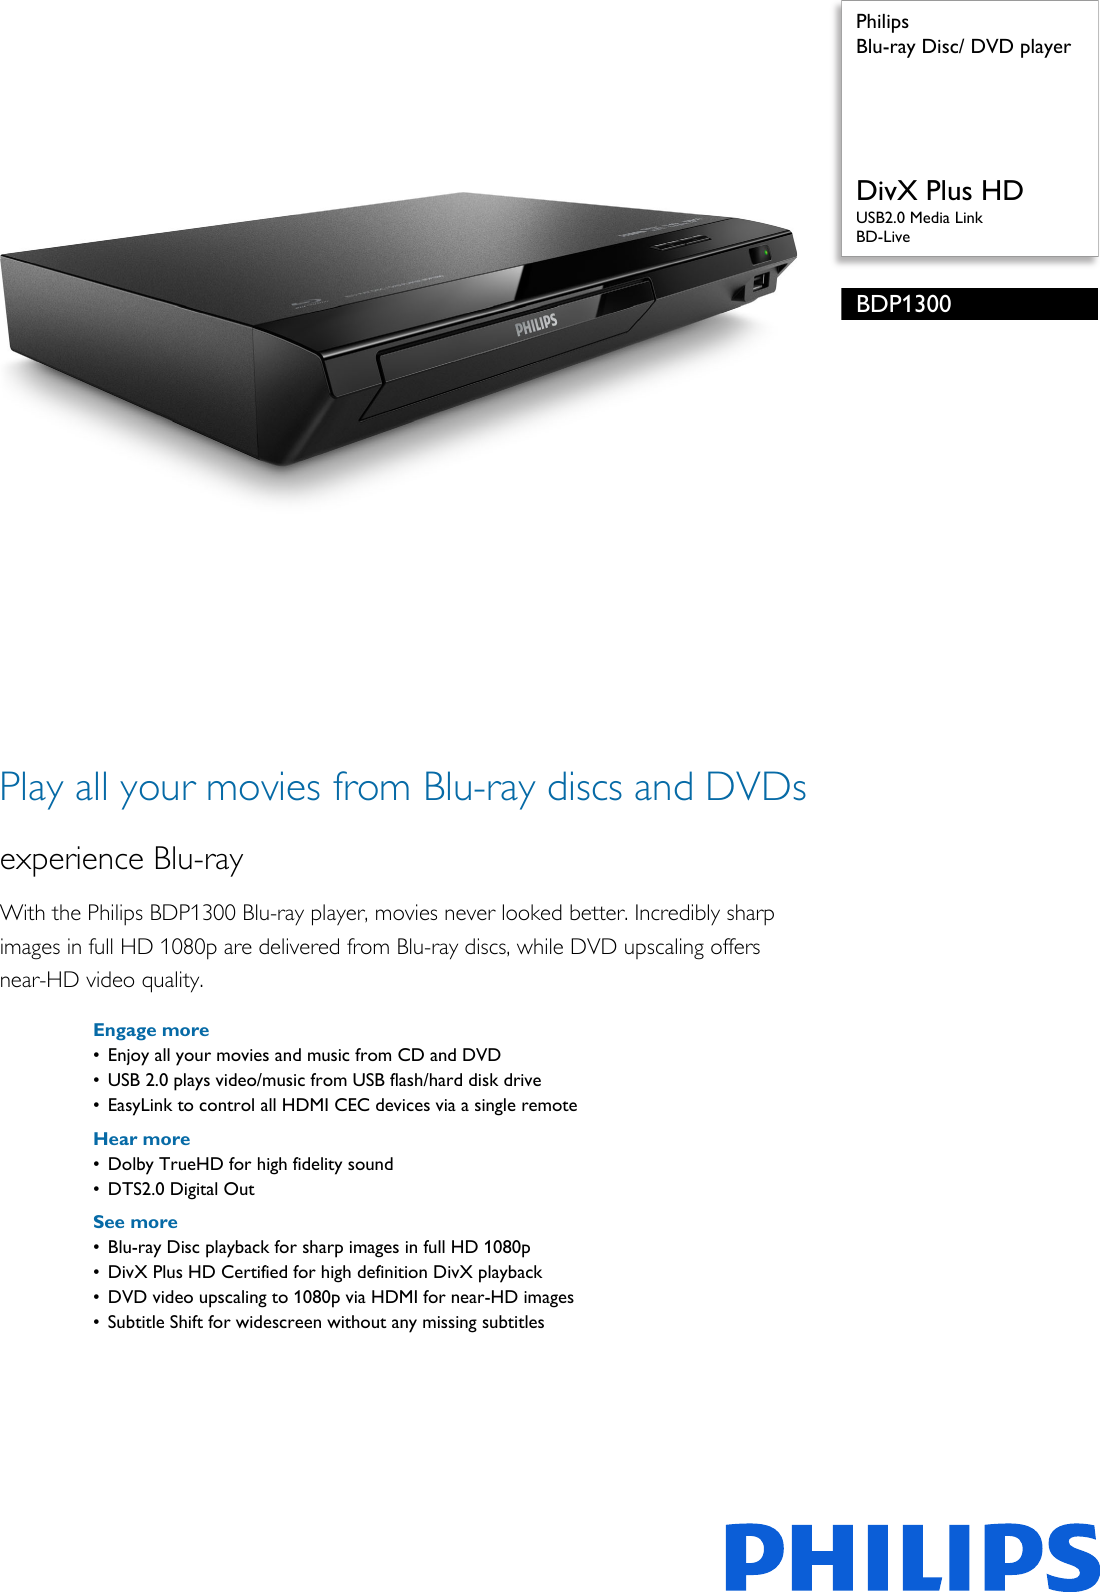 philips bdp1300 98 blu ray disc dvd player user manual leaflet rh usermanual wiki Philips DVD Player Remote Philips Portable DVD Player